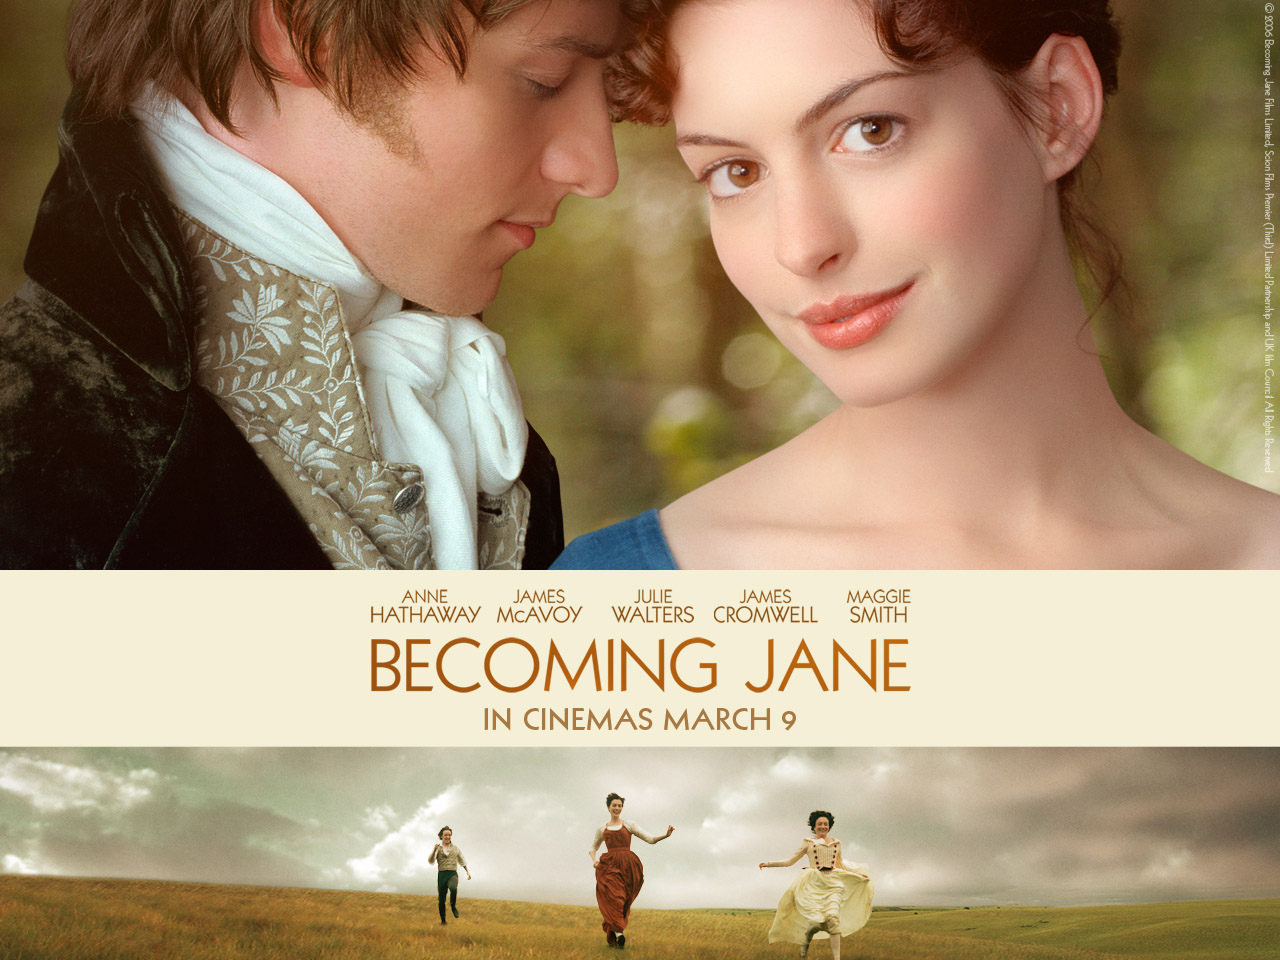 http://1.bp.blogspot.com/_tp_X3DDGwCE/TSCoerG2meI/AAAAAAAAAJY/9taKqzy-N8E/s1600/Becoming-Jane-james-mcavoy-240918_1280_960.jpg